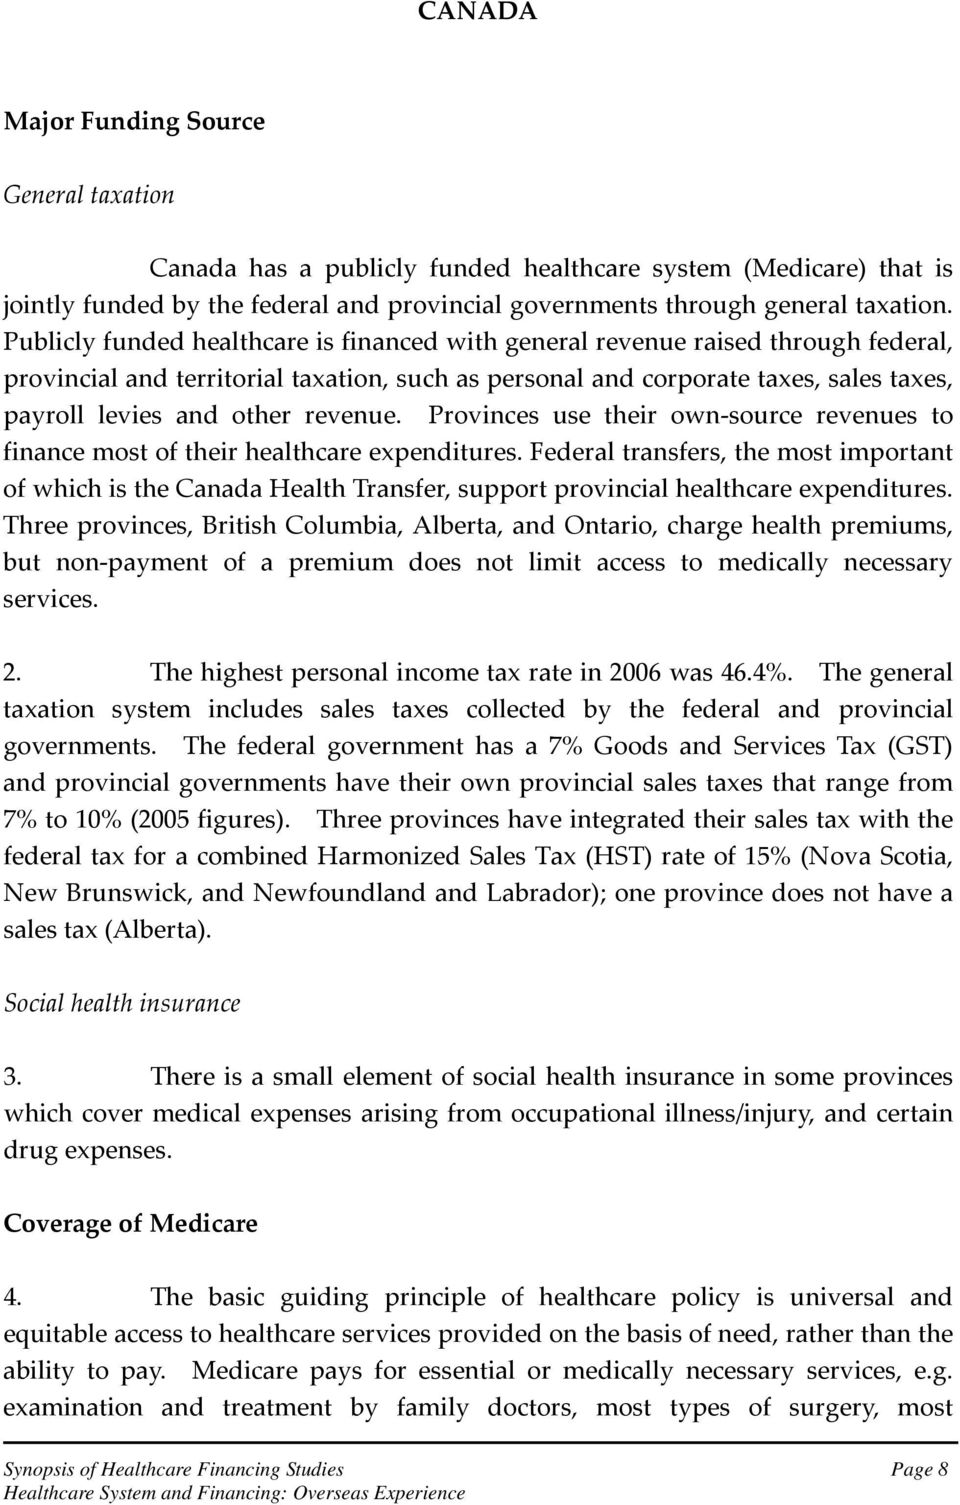 revenue. Provinces use their own source revenues to finance most of their healthcare expenditures.